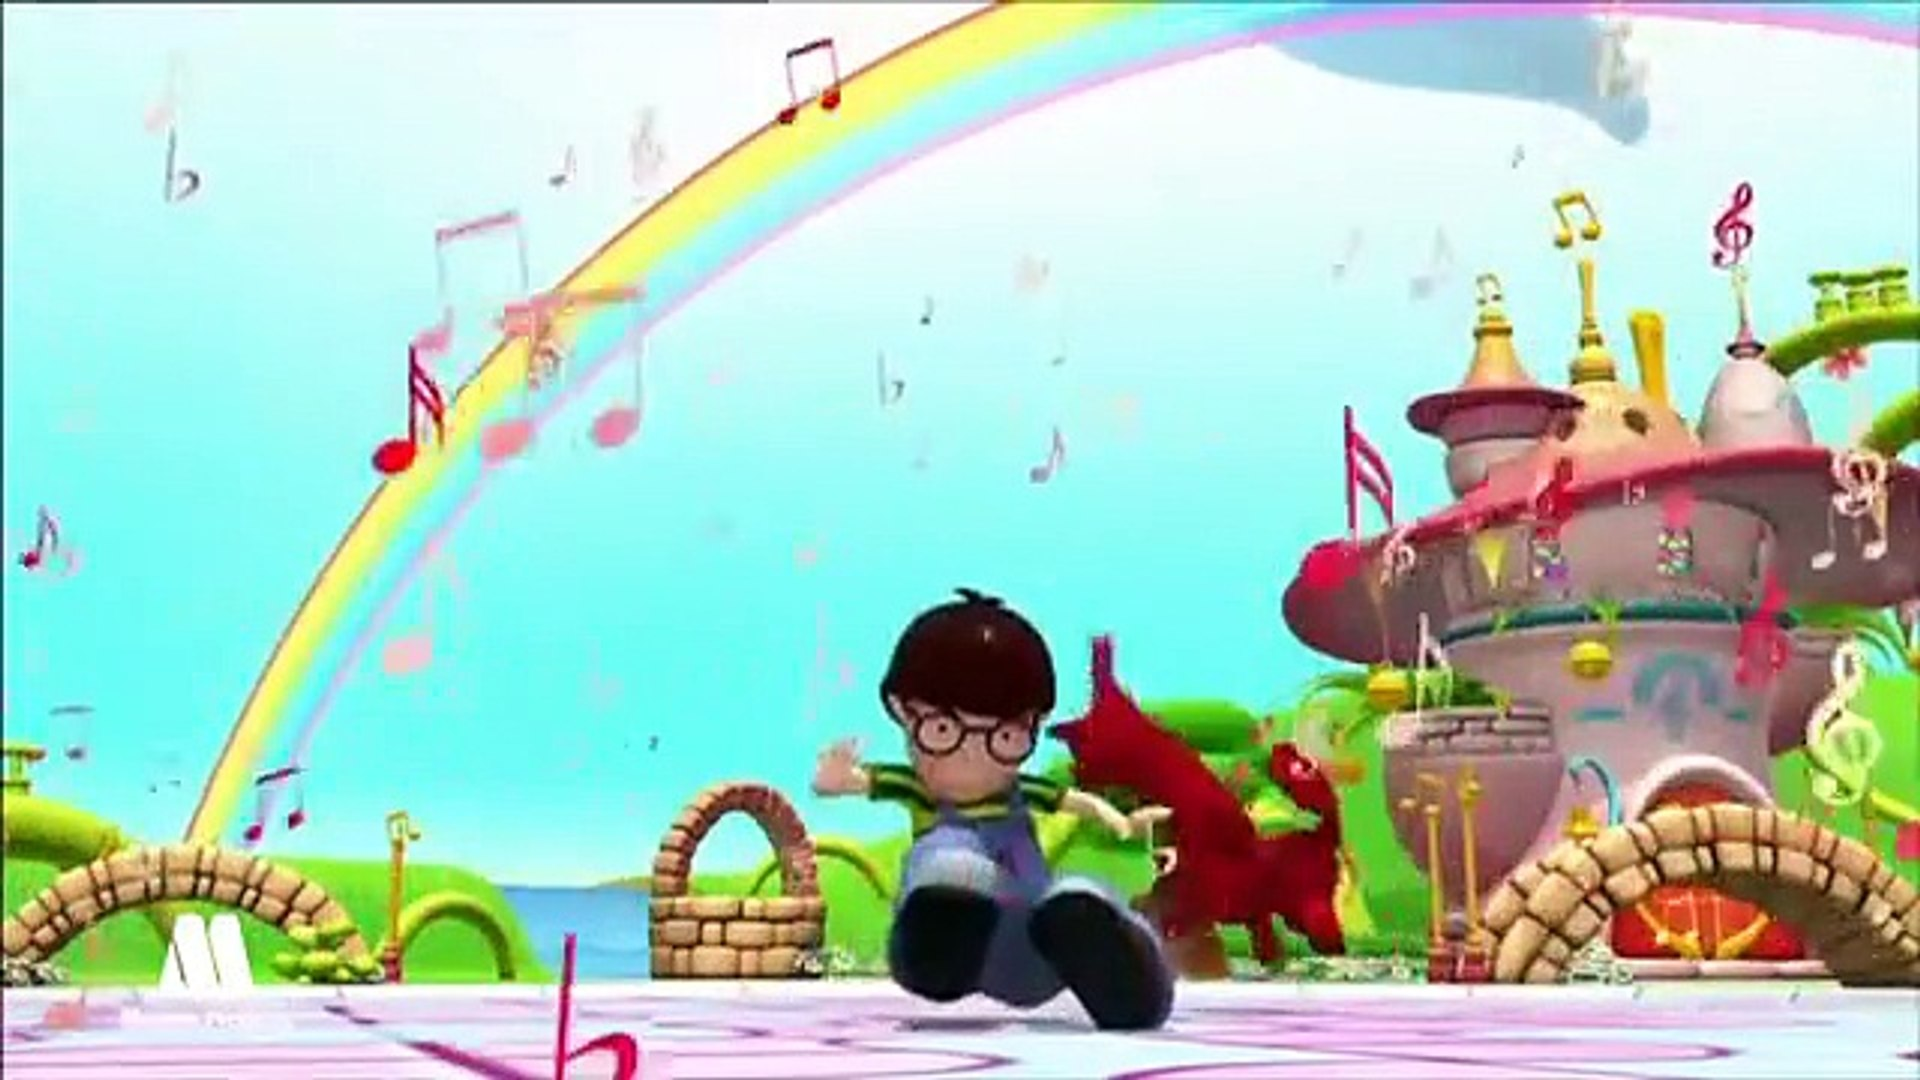 Drum kit, musical instruments, music education resources for kids